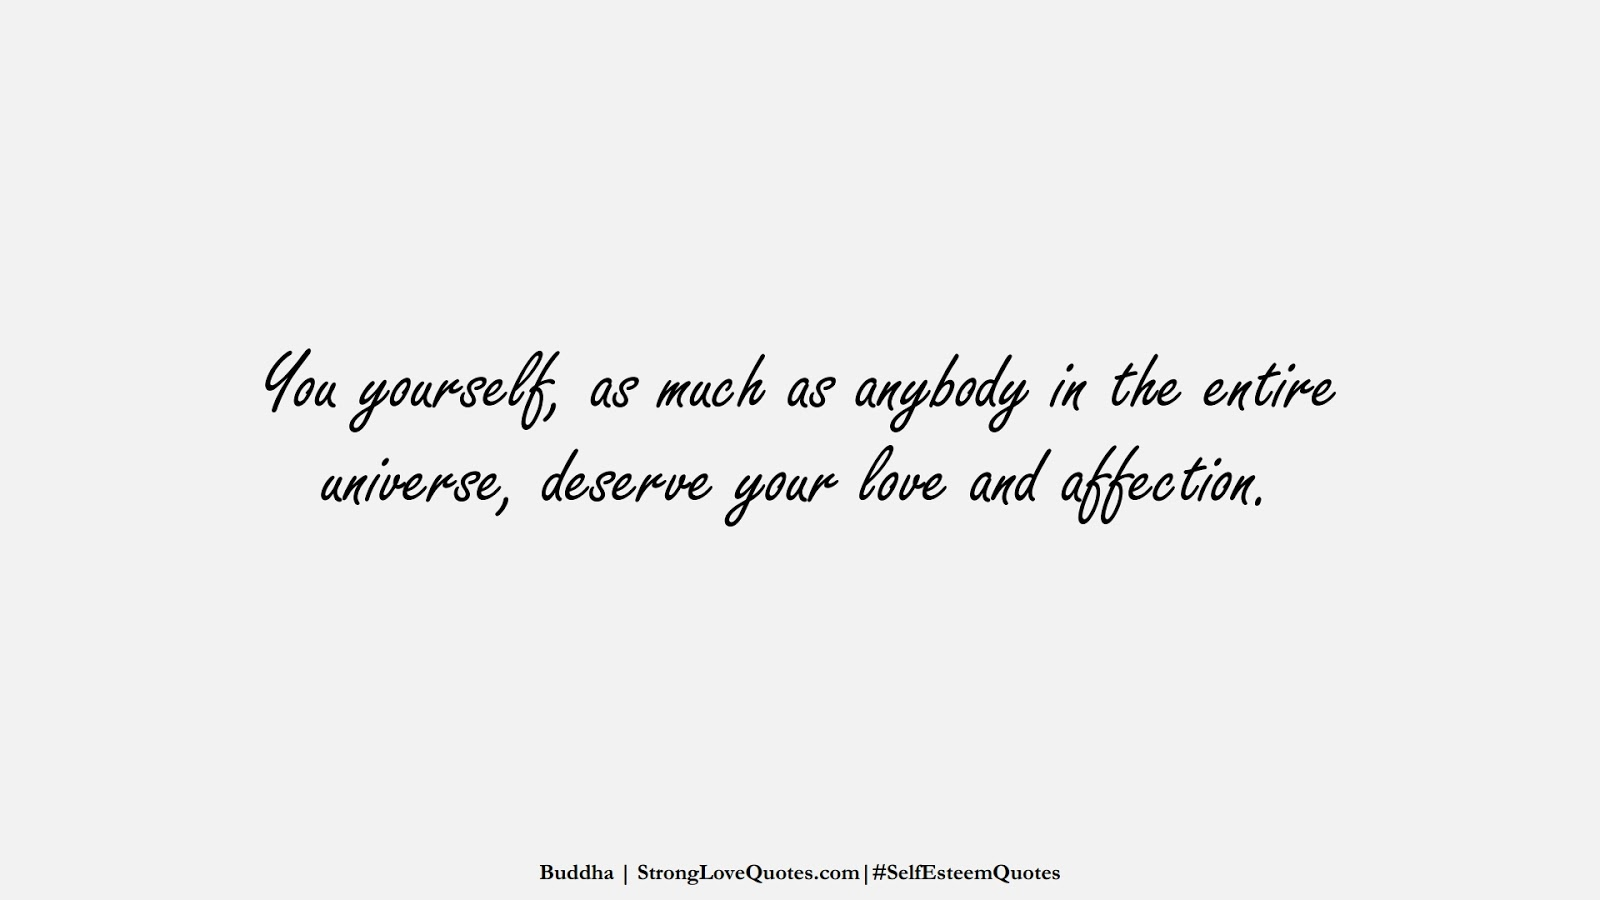 You yourself, as much as anybody in the entire universe, deserve your love and affection. (Buddha);  #SelfEsteemQuotes